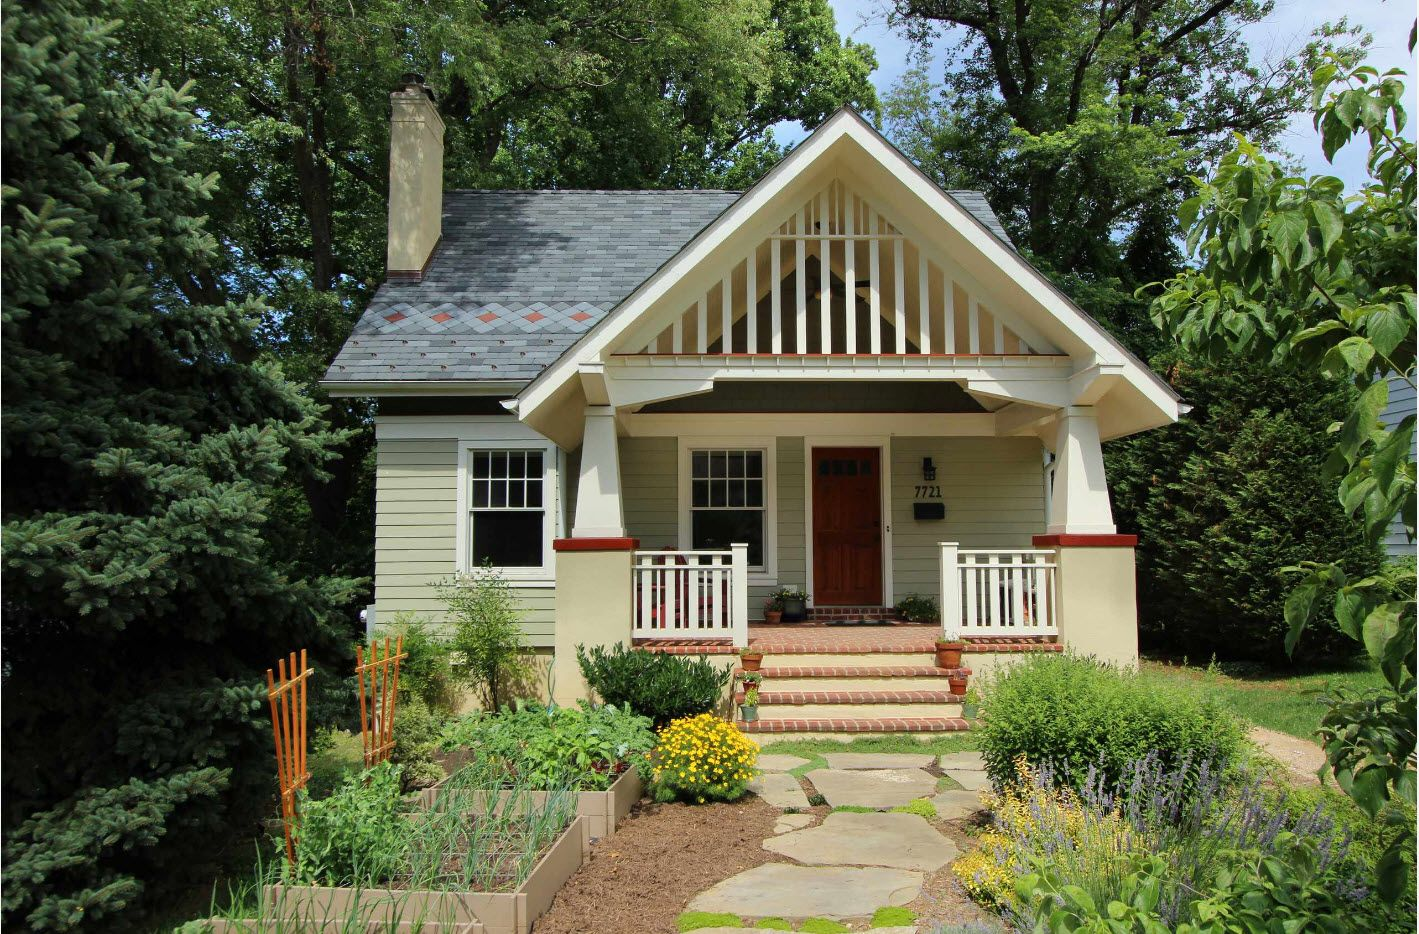 Nice silent European house style with latticed roof arch and porch